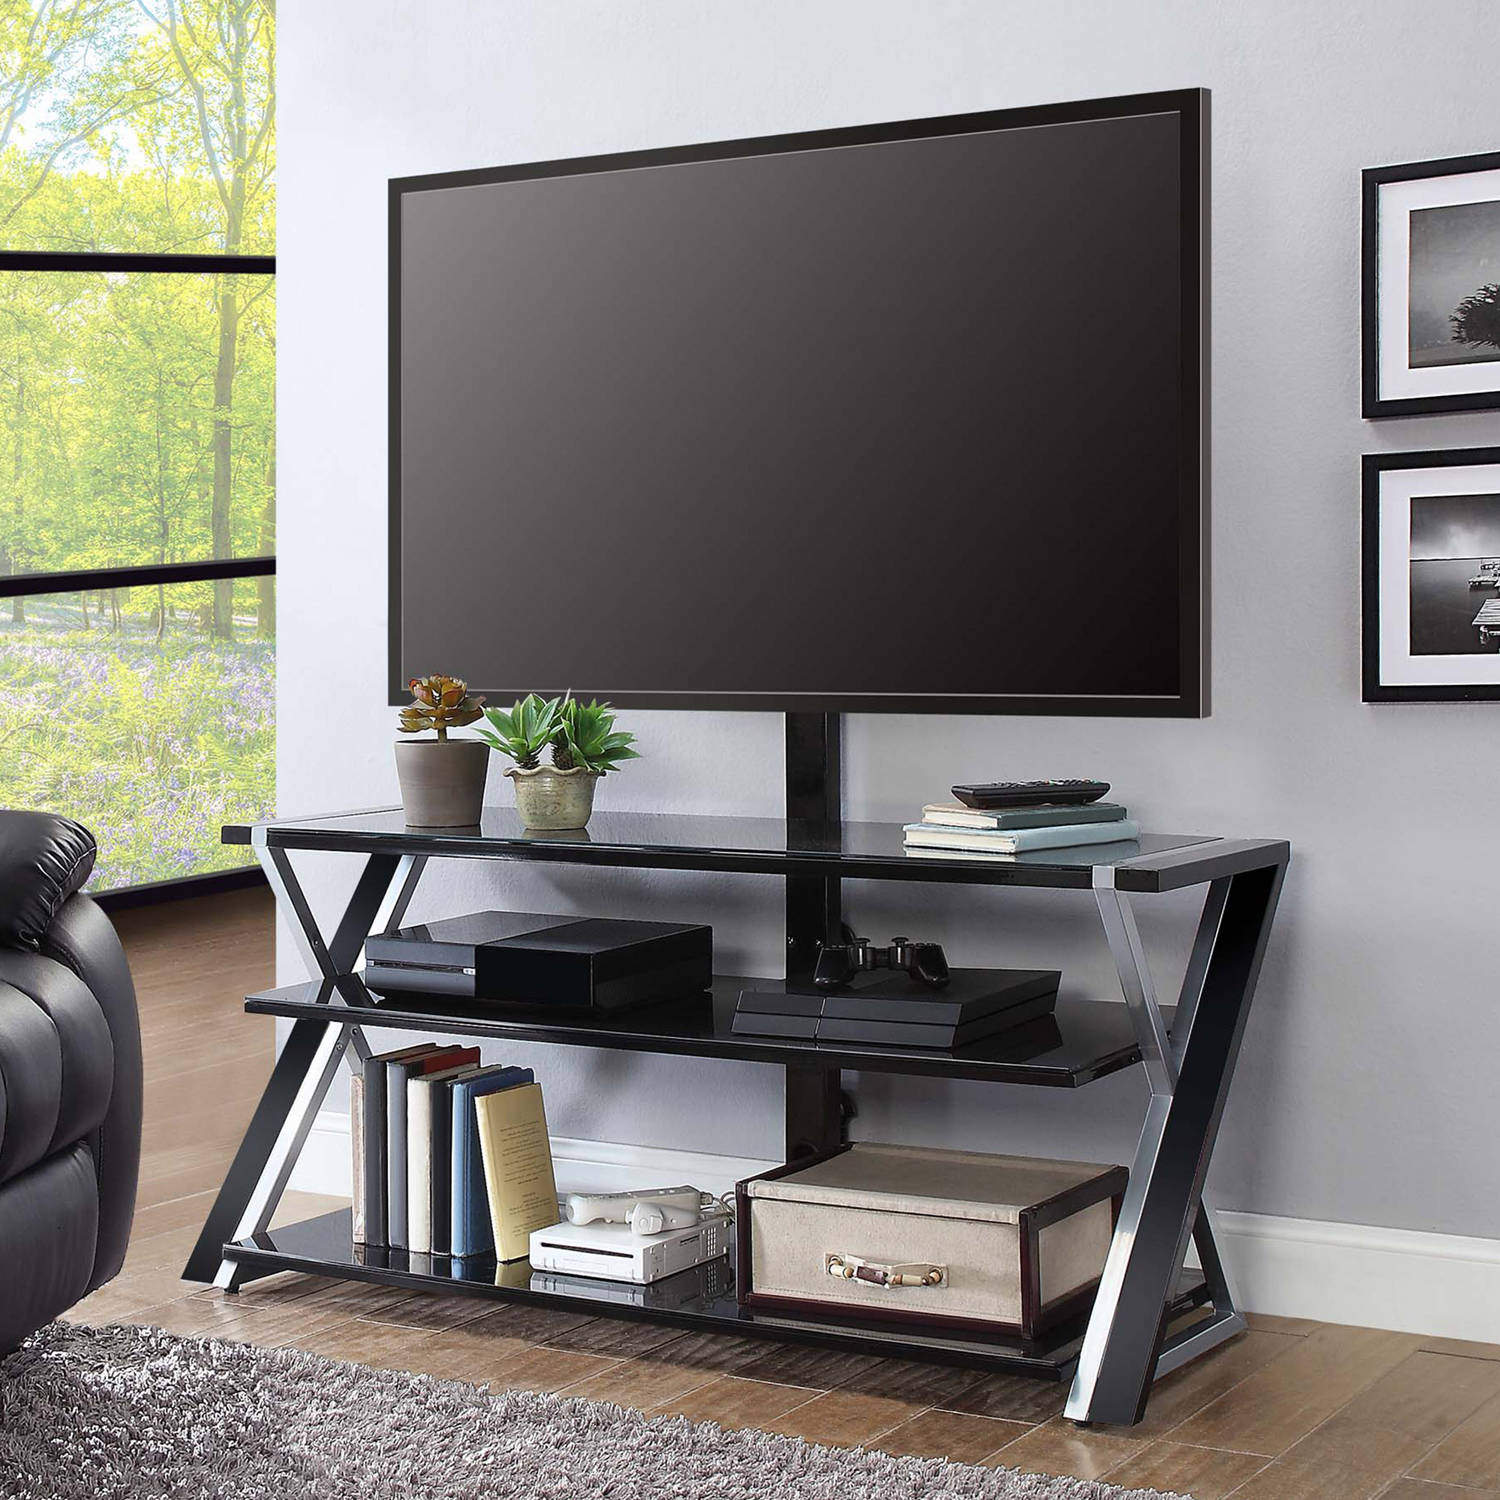 "Whalen Xavier 3-In-1 Tv Stand For Tvs Up To 70"", With 3 Display inside Walton Grey 60 Inch Tv Stands (Image 30 of 30)"